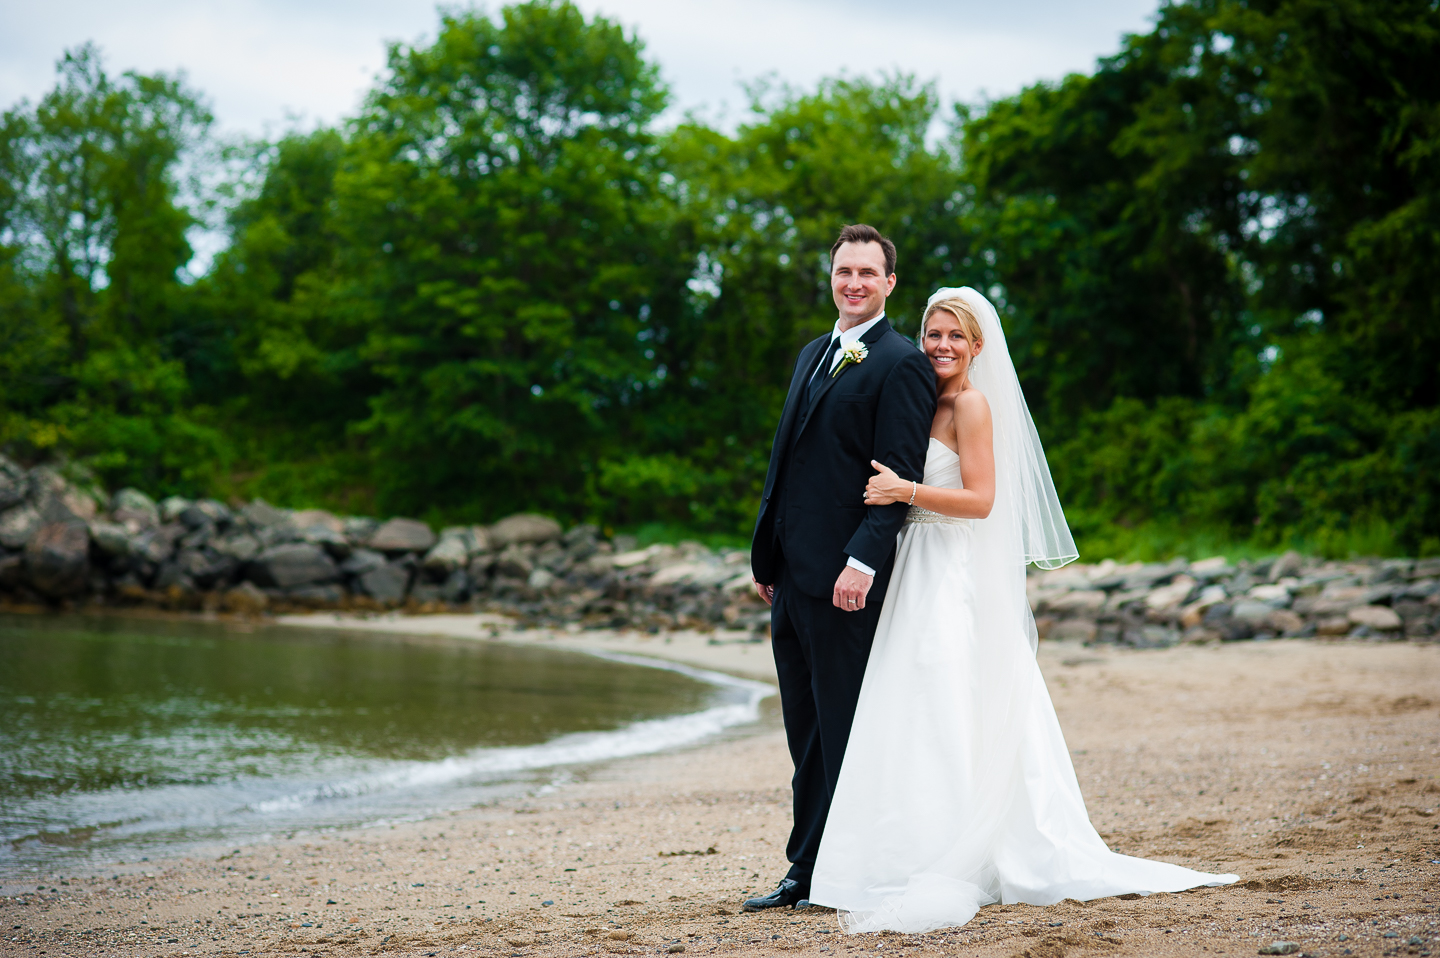 beautiful bride and groom pose on the beach during their seaside destination wedding